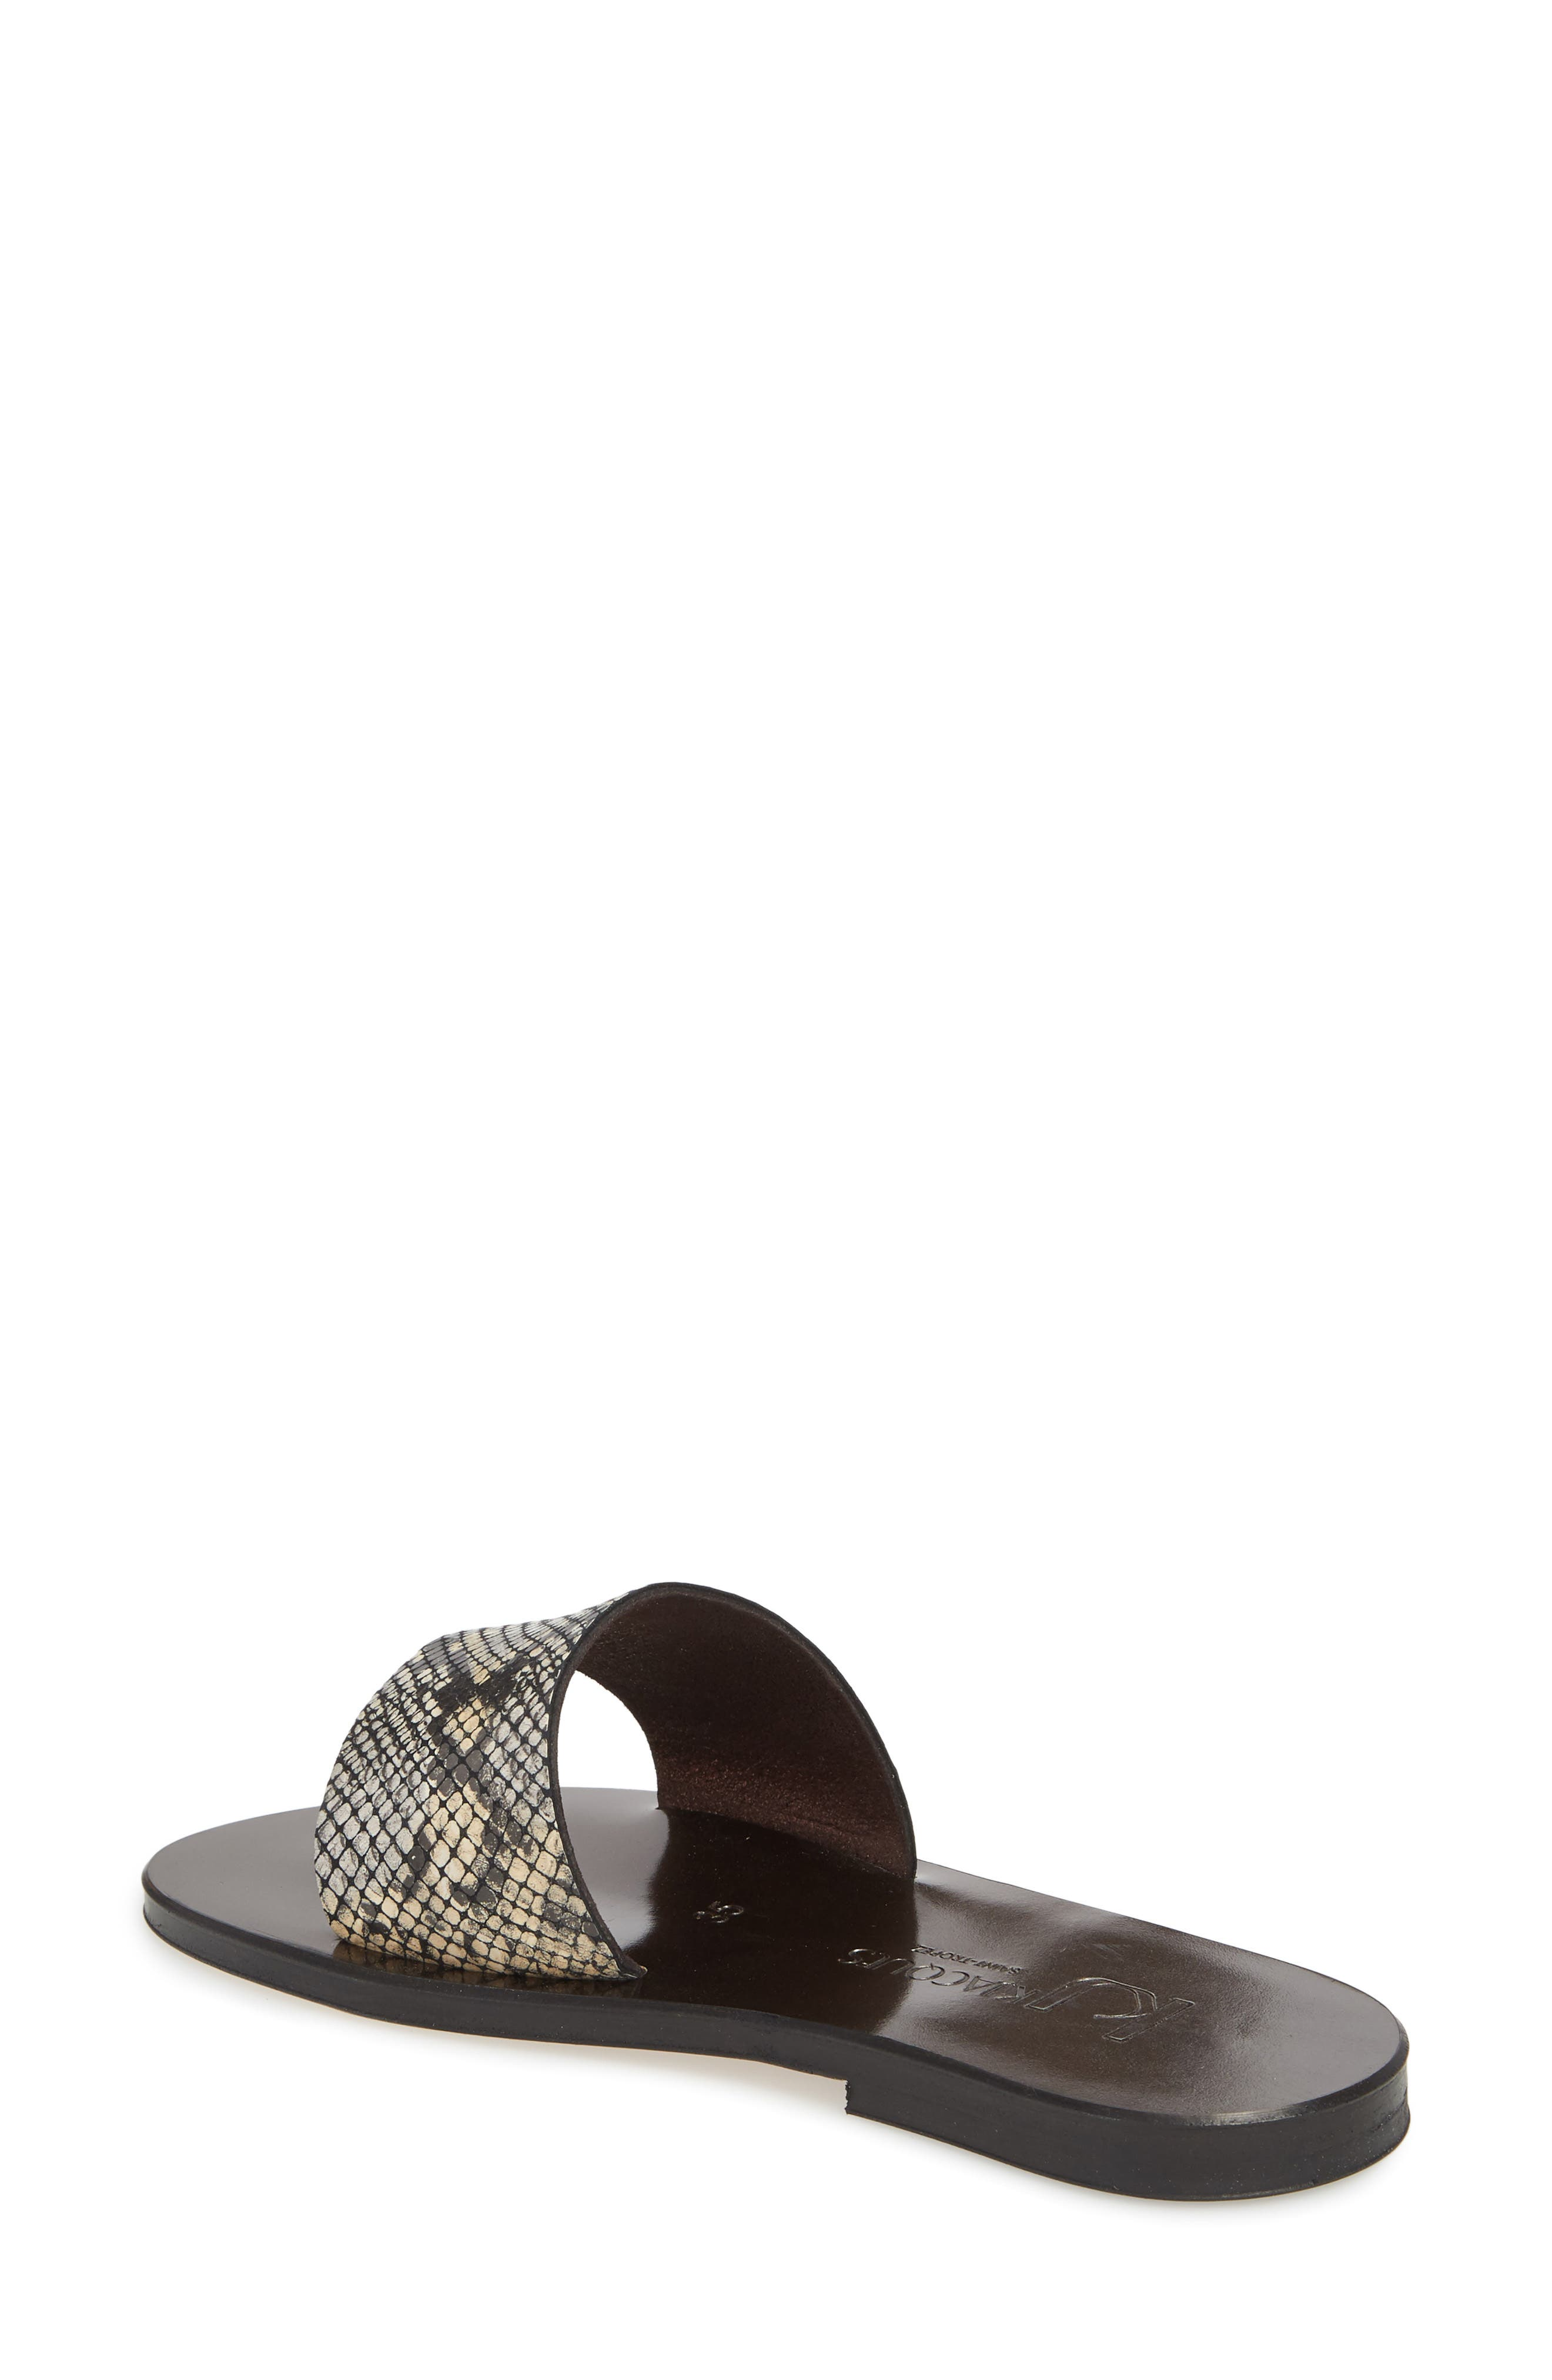 K. Jacques St. Tropez Arezzo Slide Sandal,                             Alternate thumbnail 2, color,                             Noir Leather